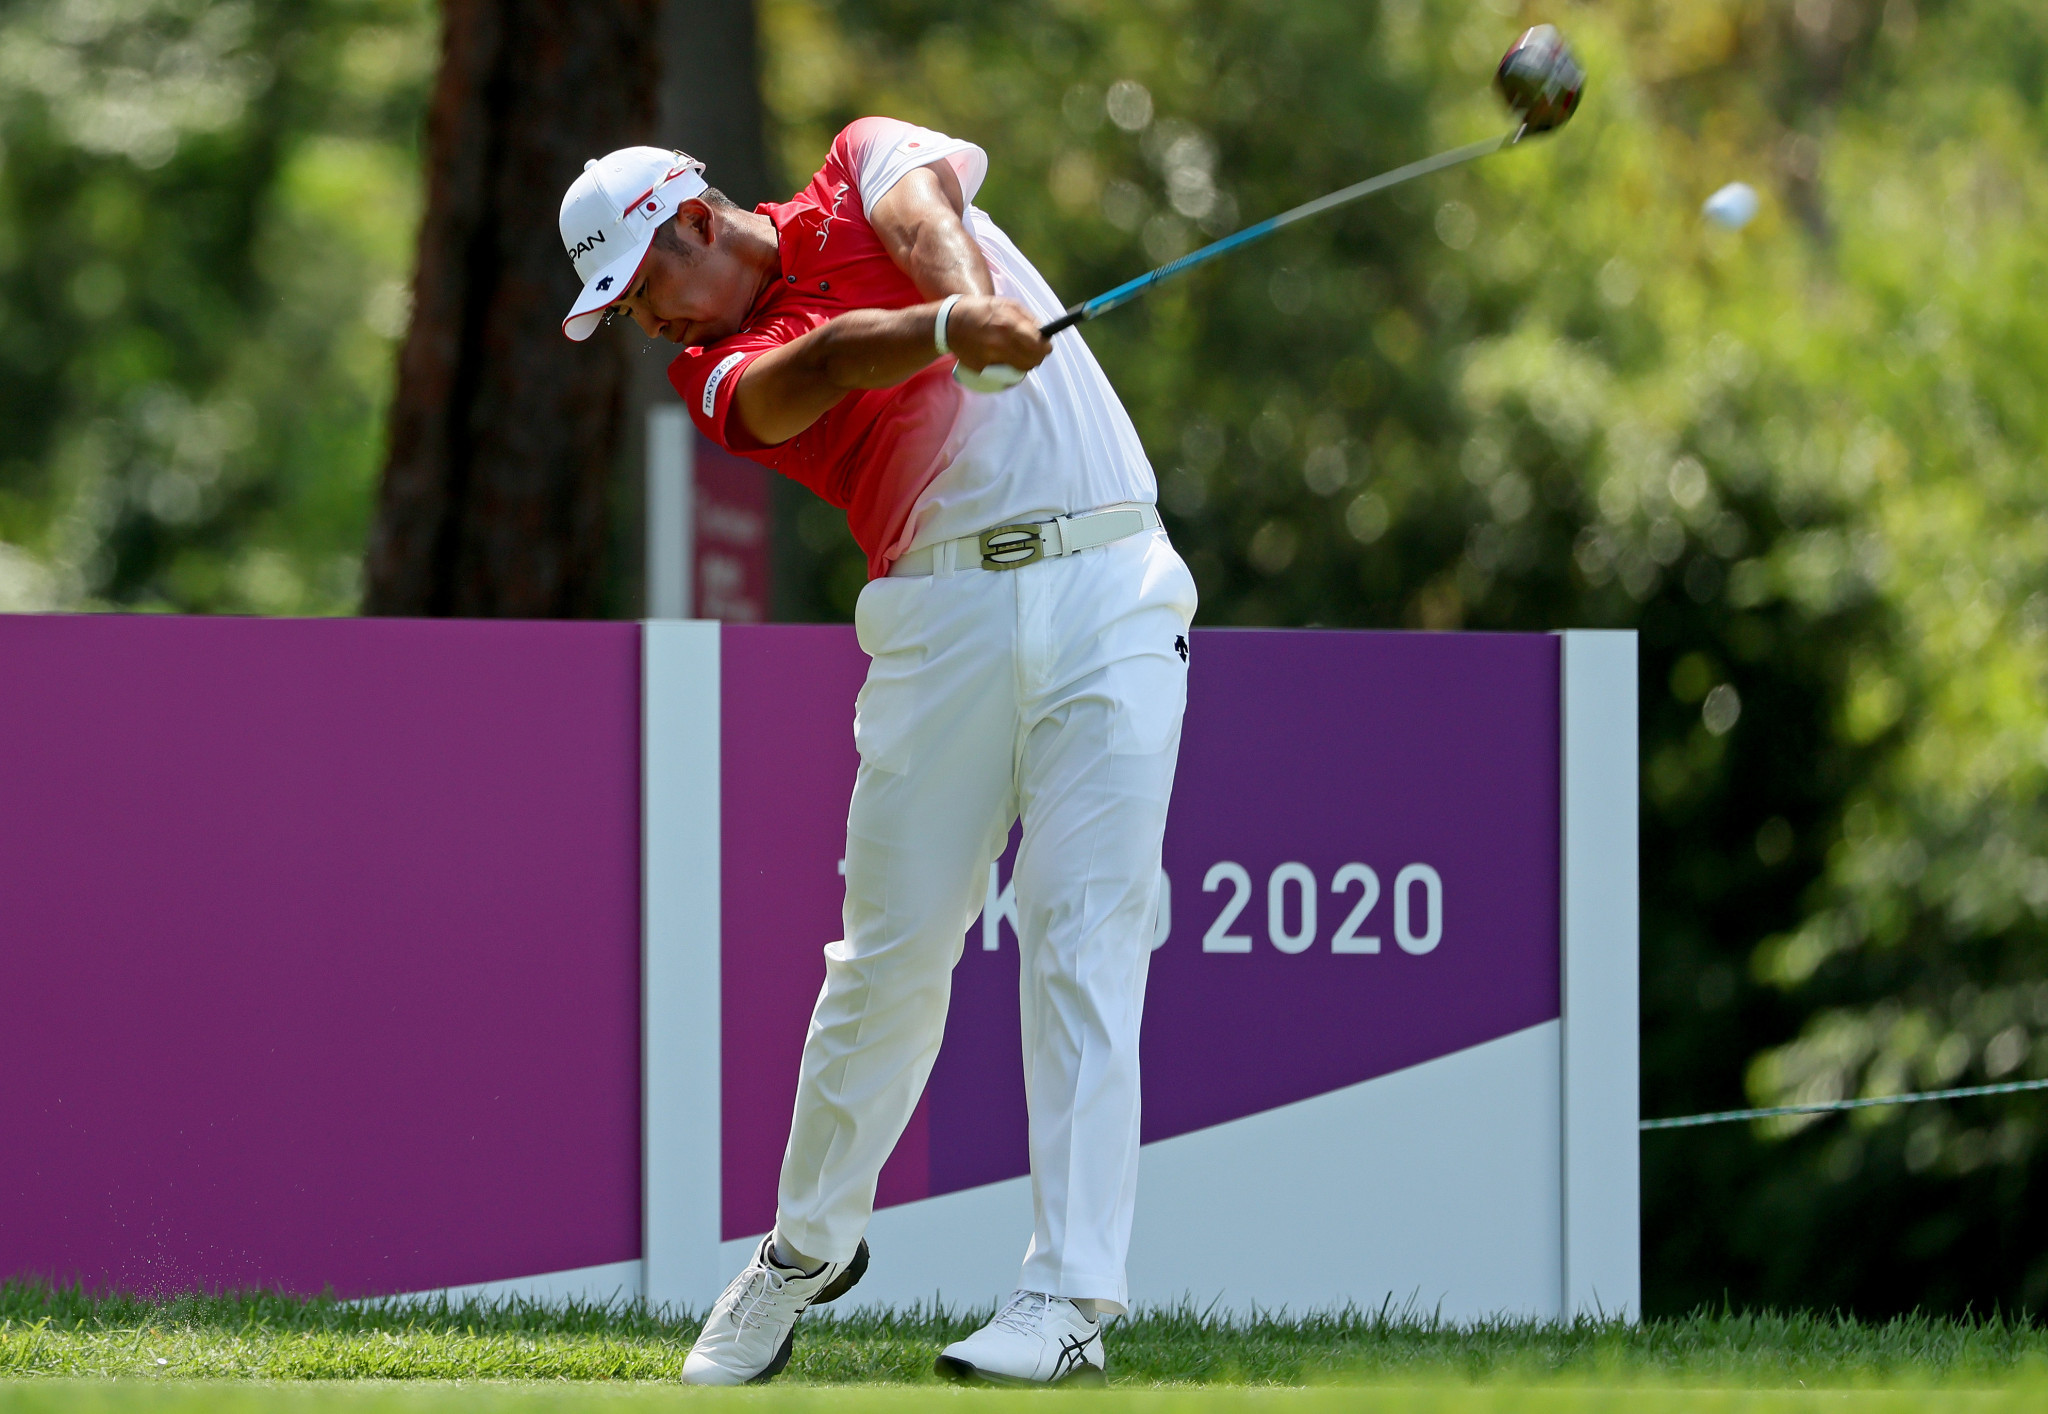 Hideki Matsuyama will hope to add home Olympic gold to his Masters title ©Getty Images